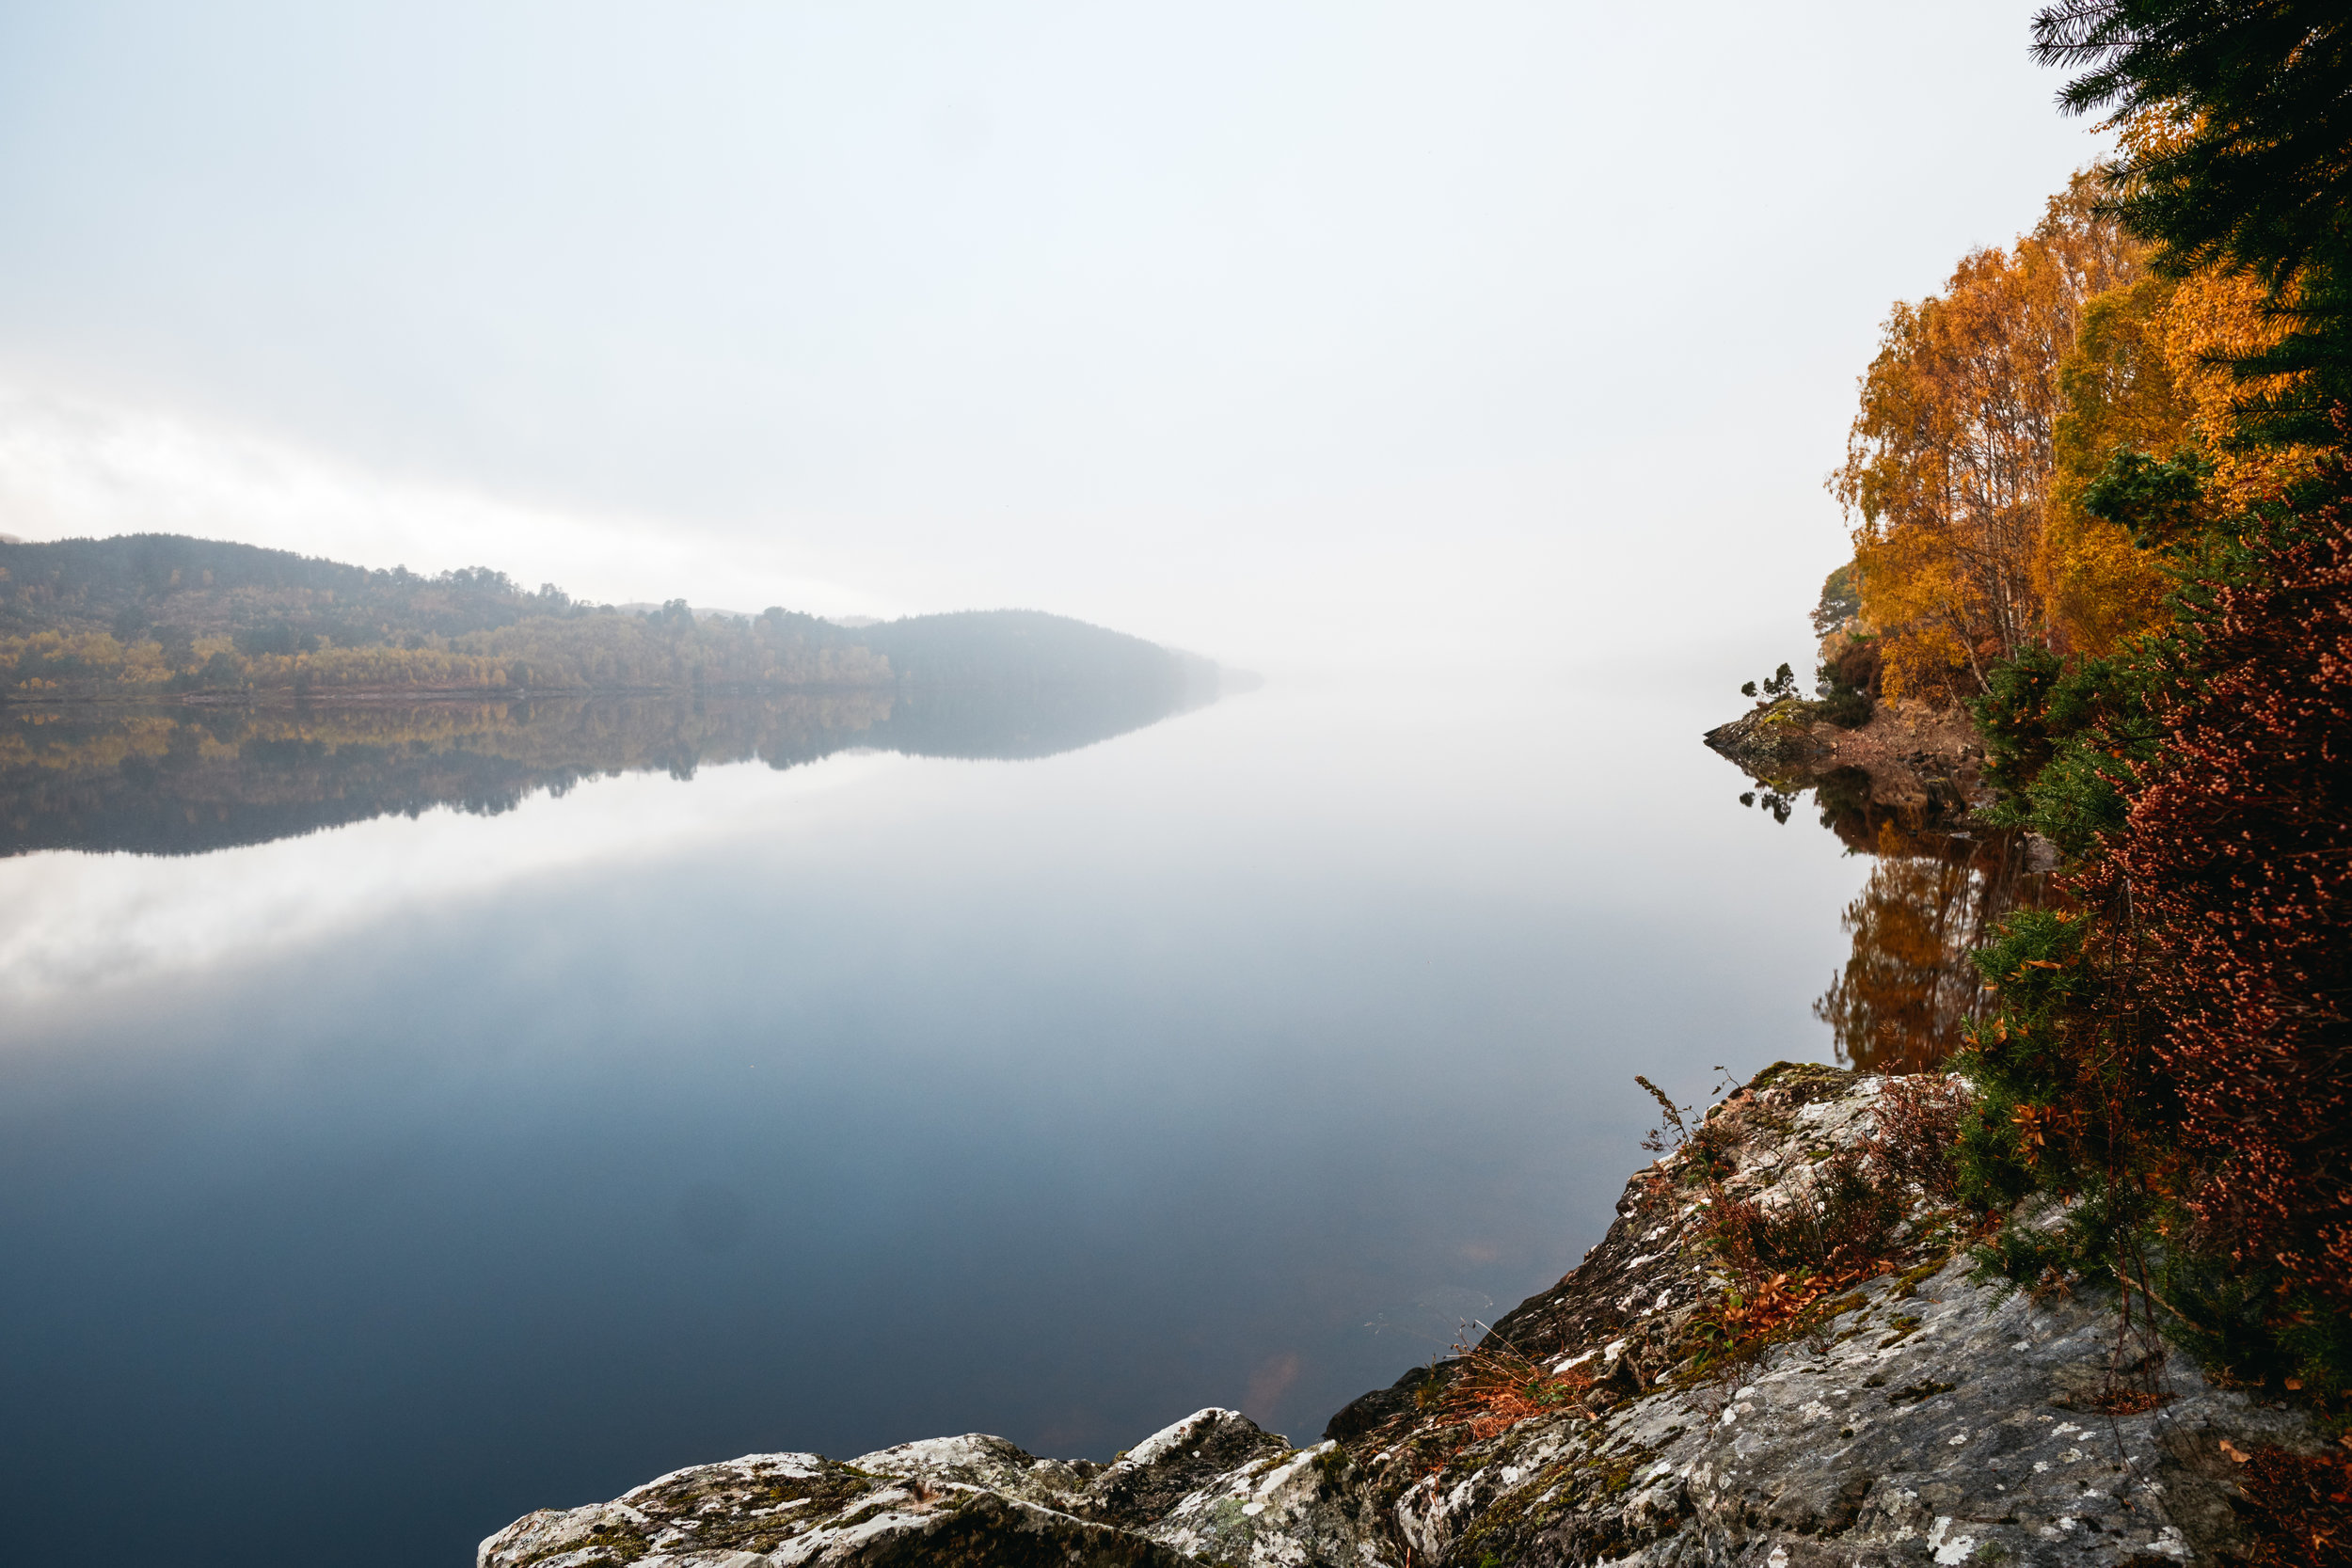 Lake in the Scottish Highlands